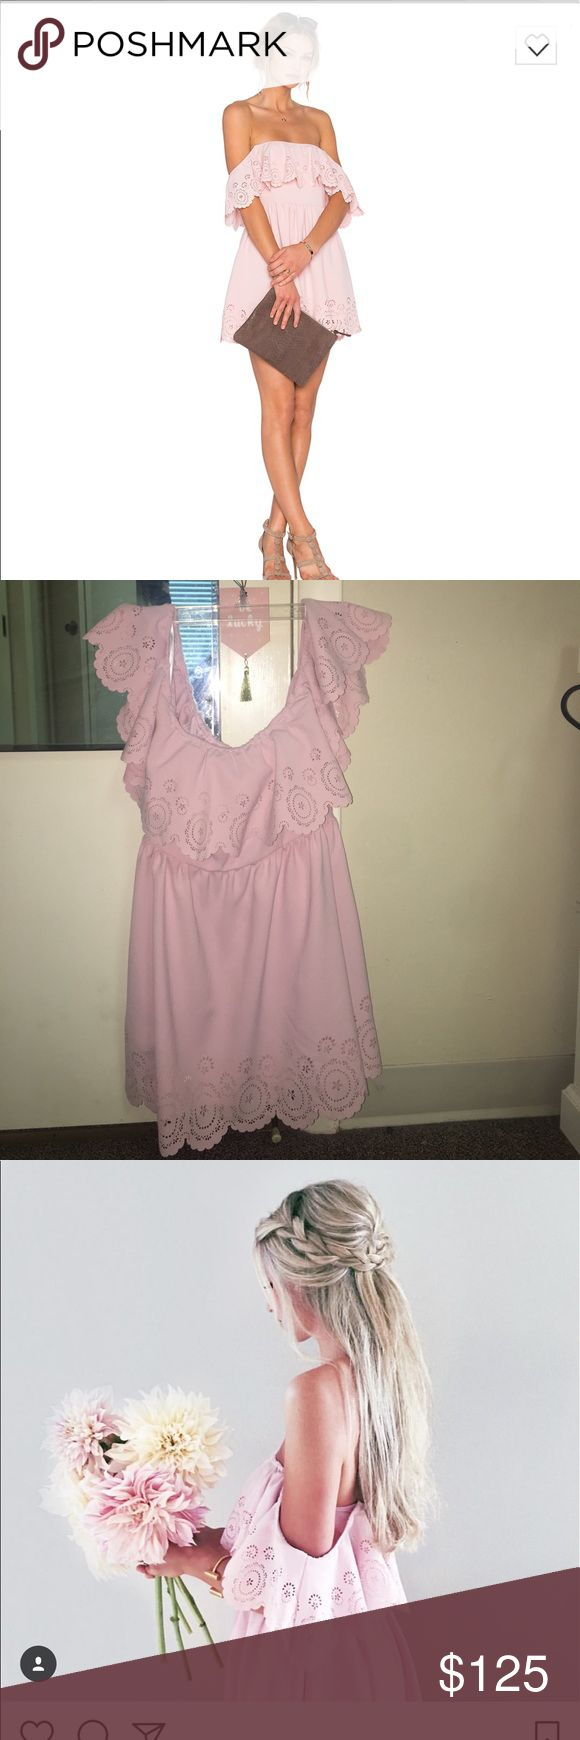 Lovers and friends dream vacay dress Strapless dress, never worn completely brand new! Just no tag. Sold out online in this color, can find the dress on revolve in other colors to see price and fit Lovers + Friends Dresses Strapless